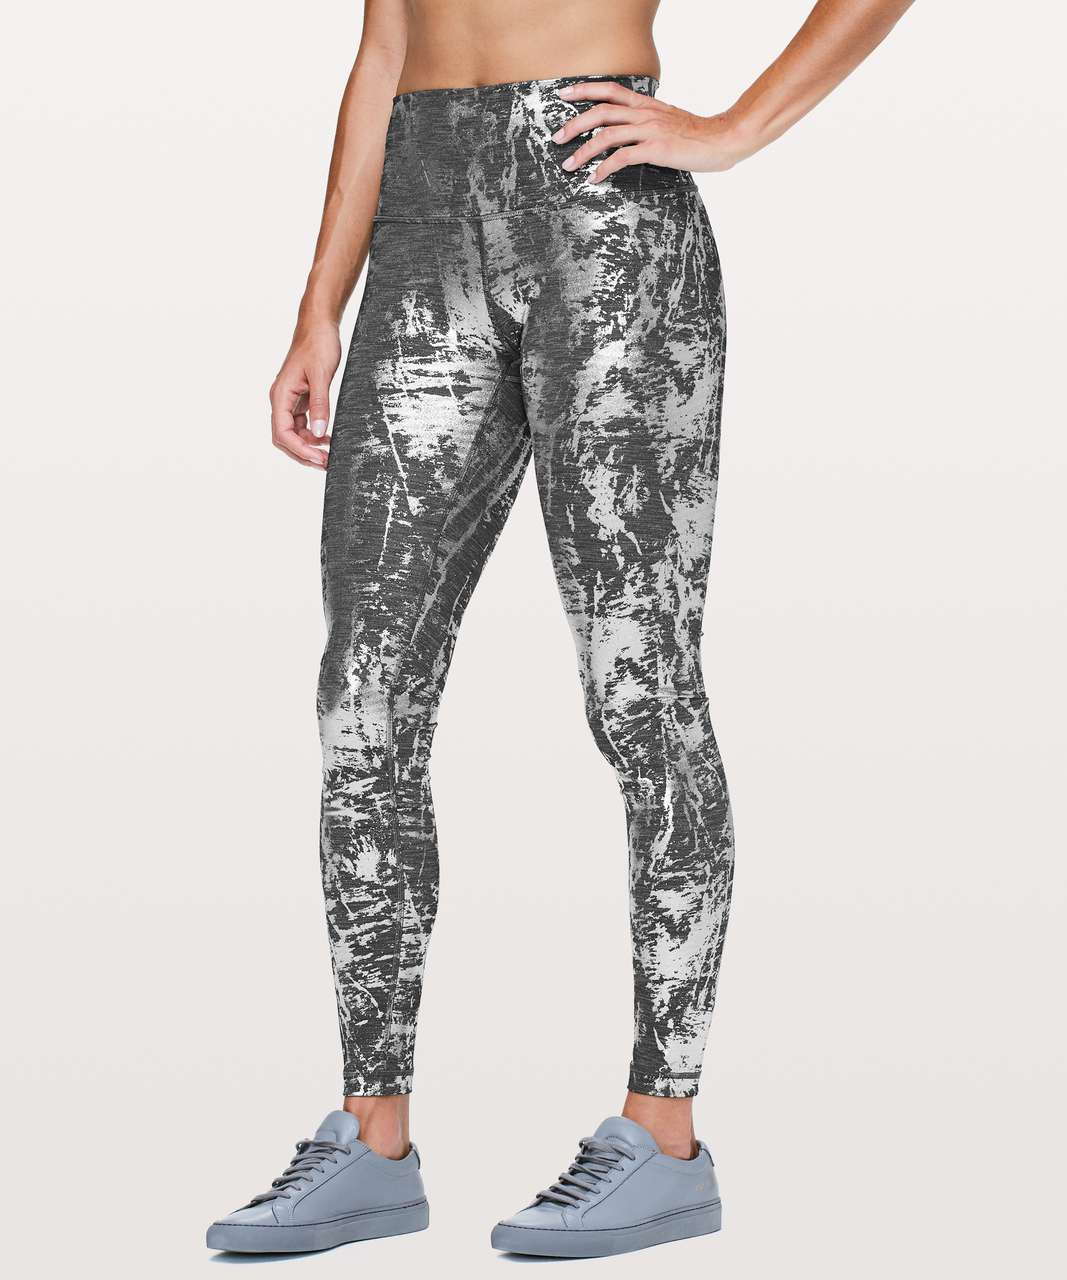 d2b5100188 Lululemon Wunder Under Hi-Rise Tight *Brindle Foil 28